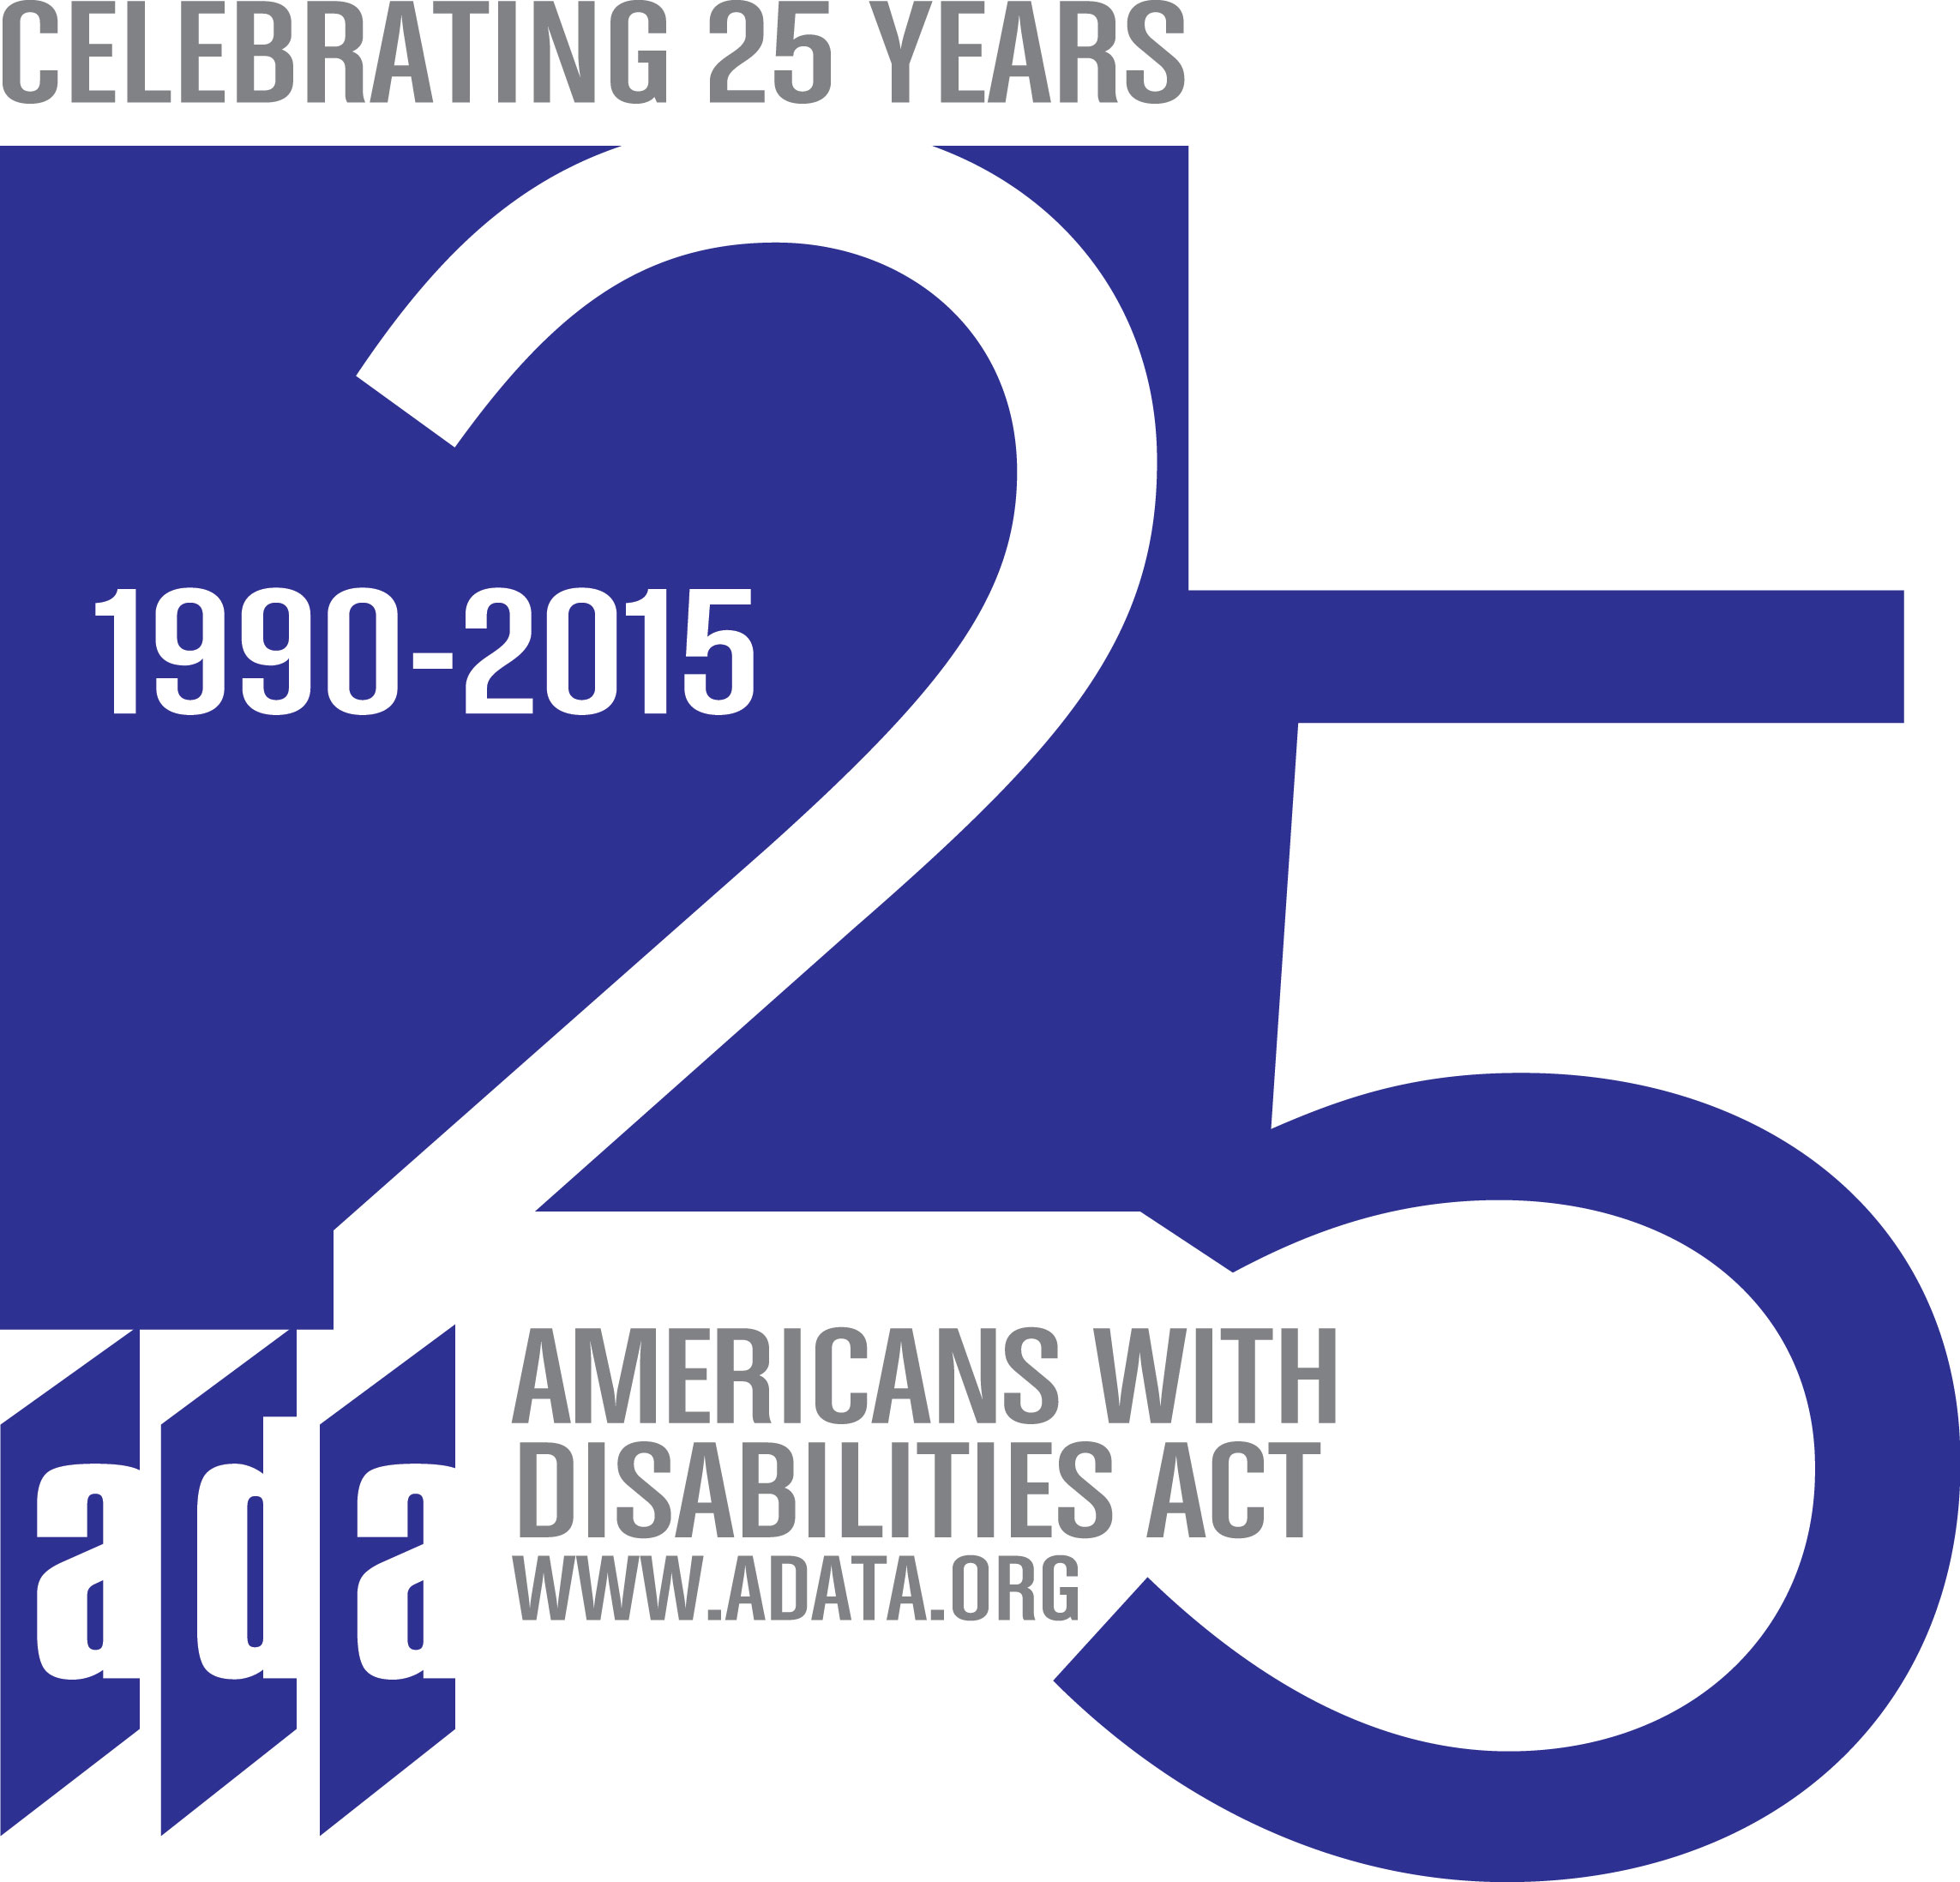 timeline of the americans with disabilities act | ada national network